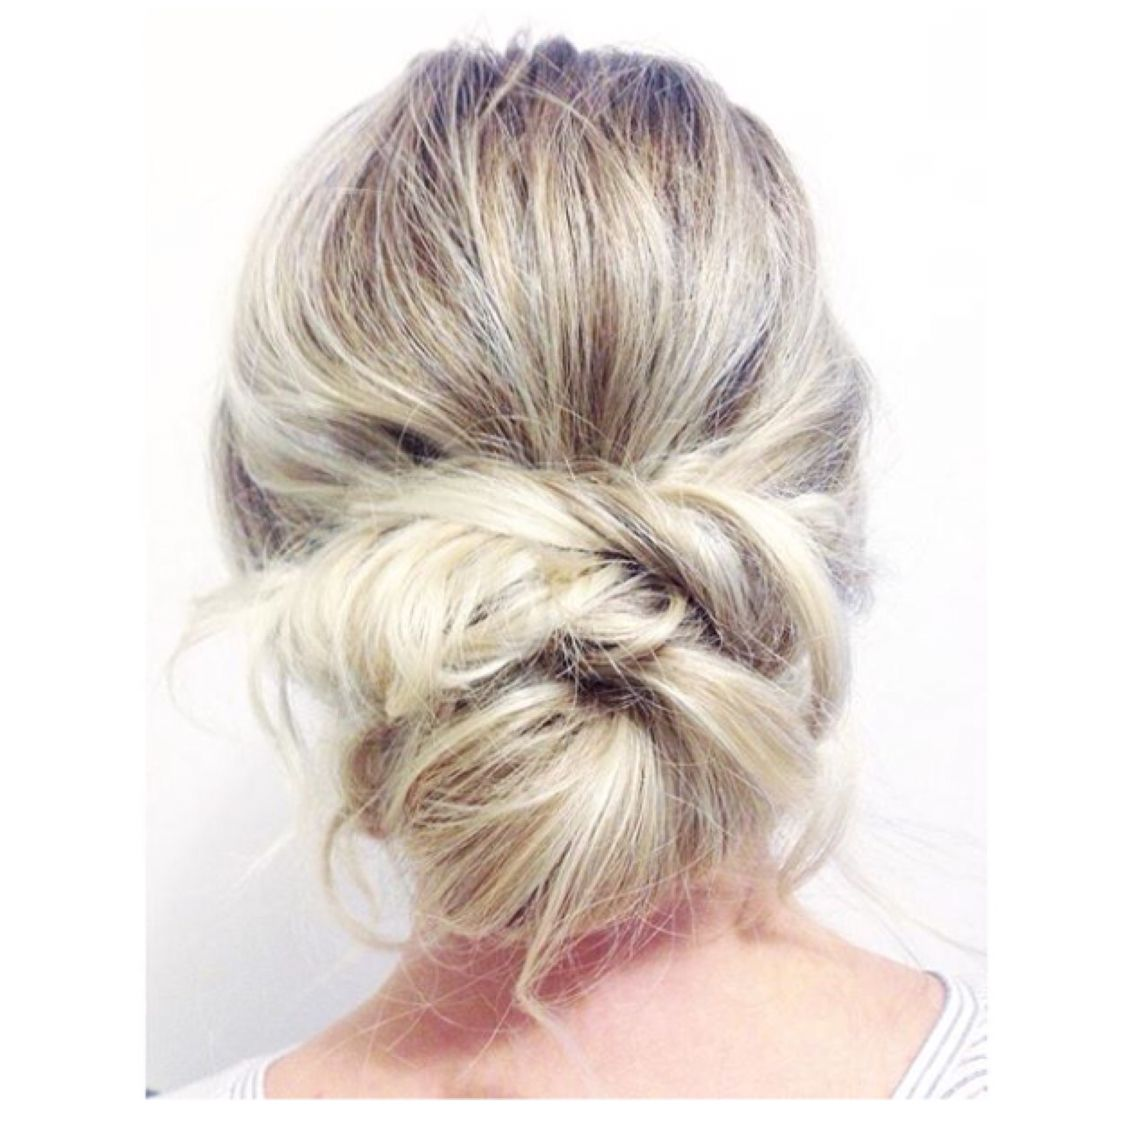 Voluminous loose low bun | Hair | Pinterest | Low buns, Wedding hair ...